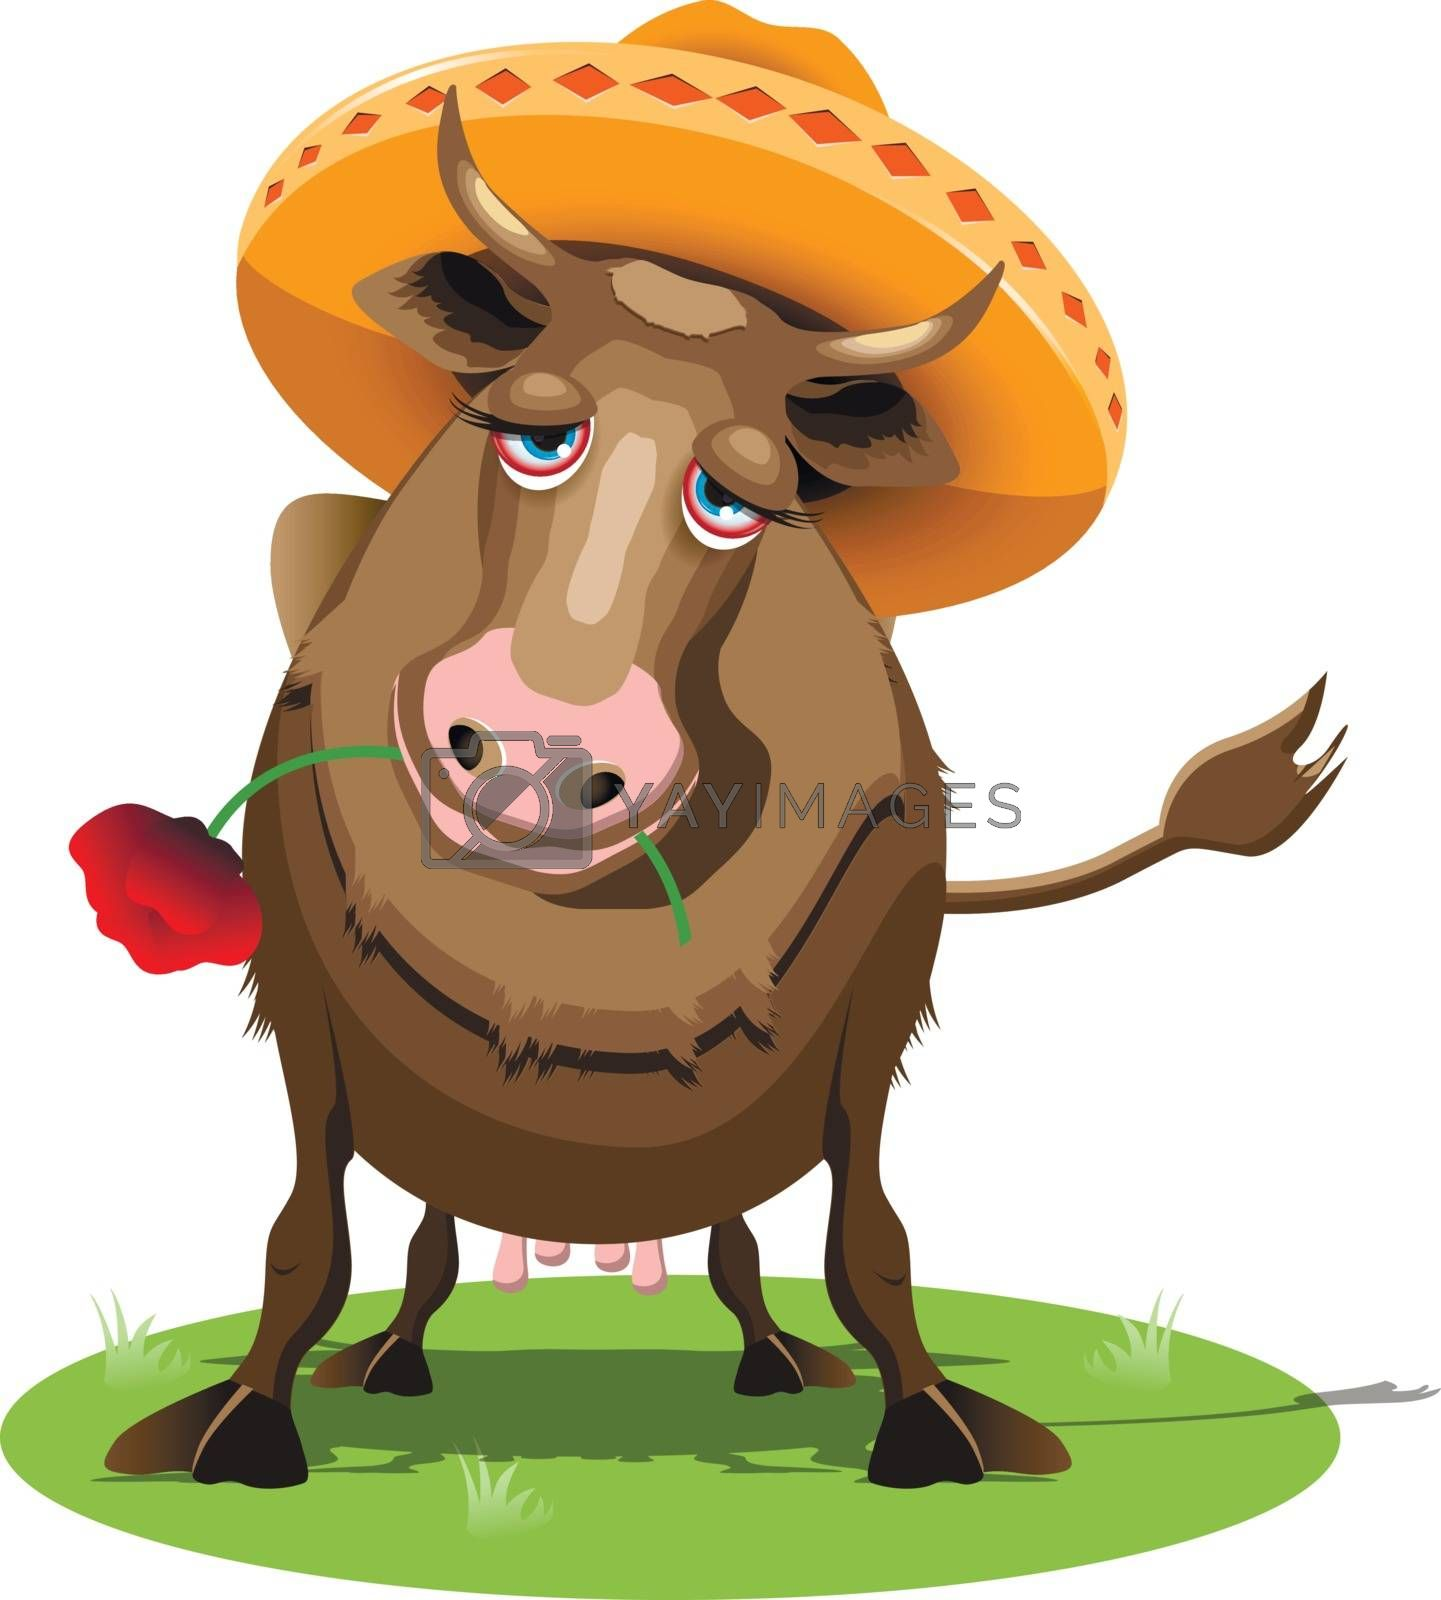 Illustration Cow in a Sombrero with the Red Poppy